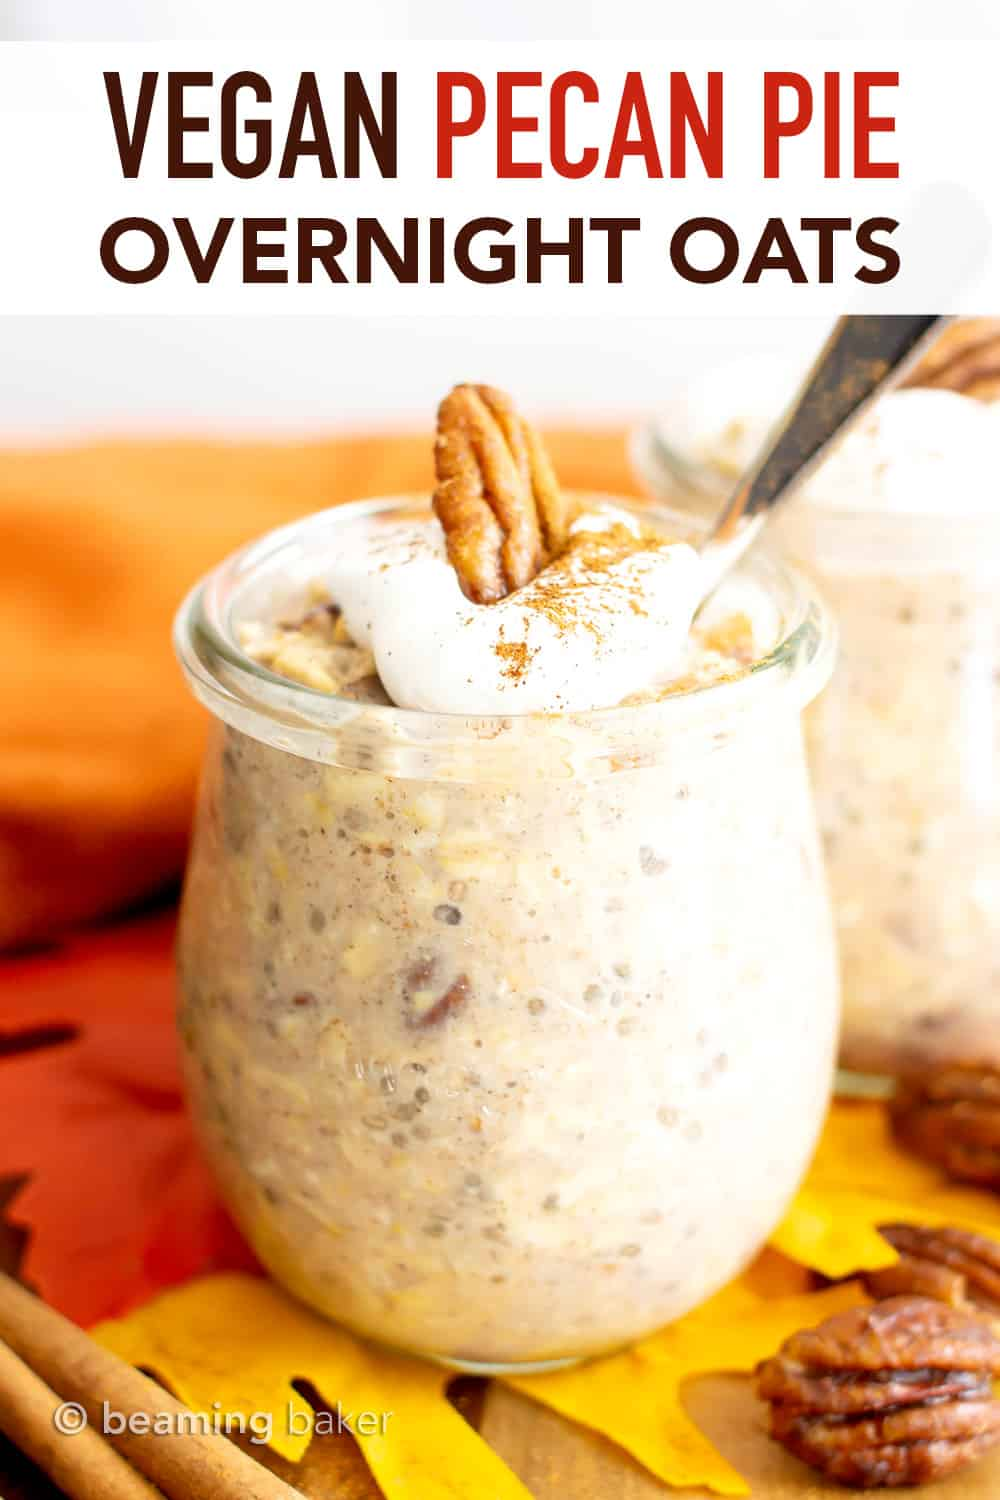 Pecan Pie Vegan Overnight Oats Recipe: this healthy vegan overnight oatmeal recipe is creamy, indulgent & tastes like pecan pie! Quick 'n easy, made with whole ingredients, Gluten Free, Dairy-Free. #OvernightOats #Vegan #Healthy #Breakfast #GlutenFree | Recipe at BeamingBaker.com